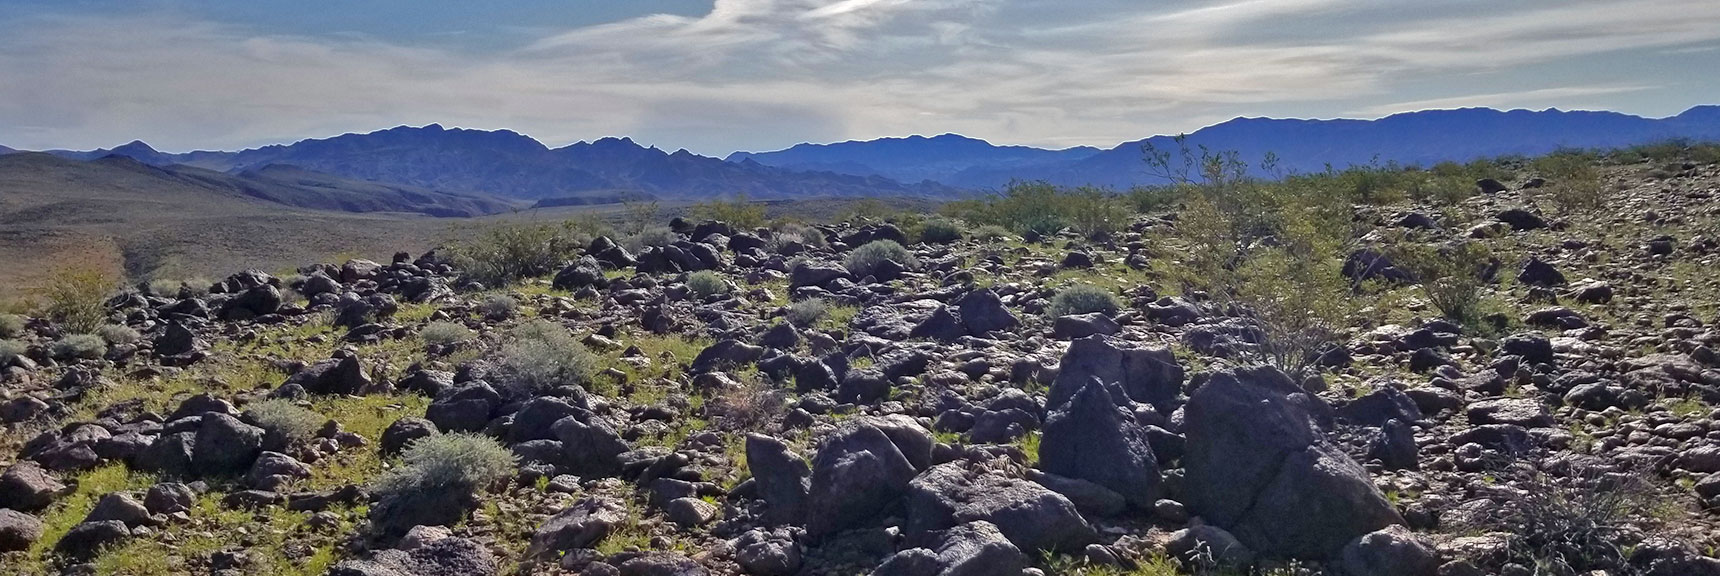 First View of Summit After Ascending North Western Side of Black Mesa in Lake Mead National Recreation Area, Nevada